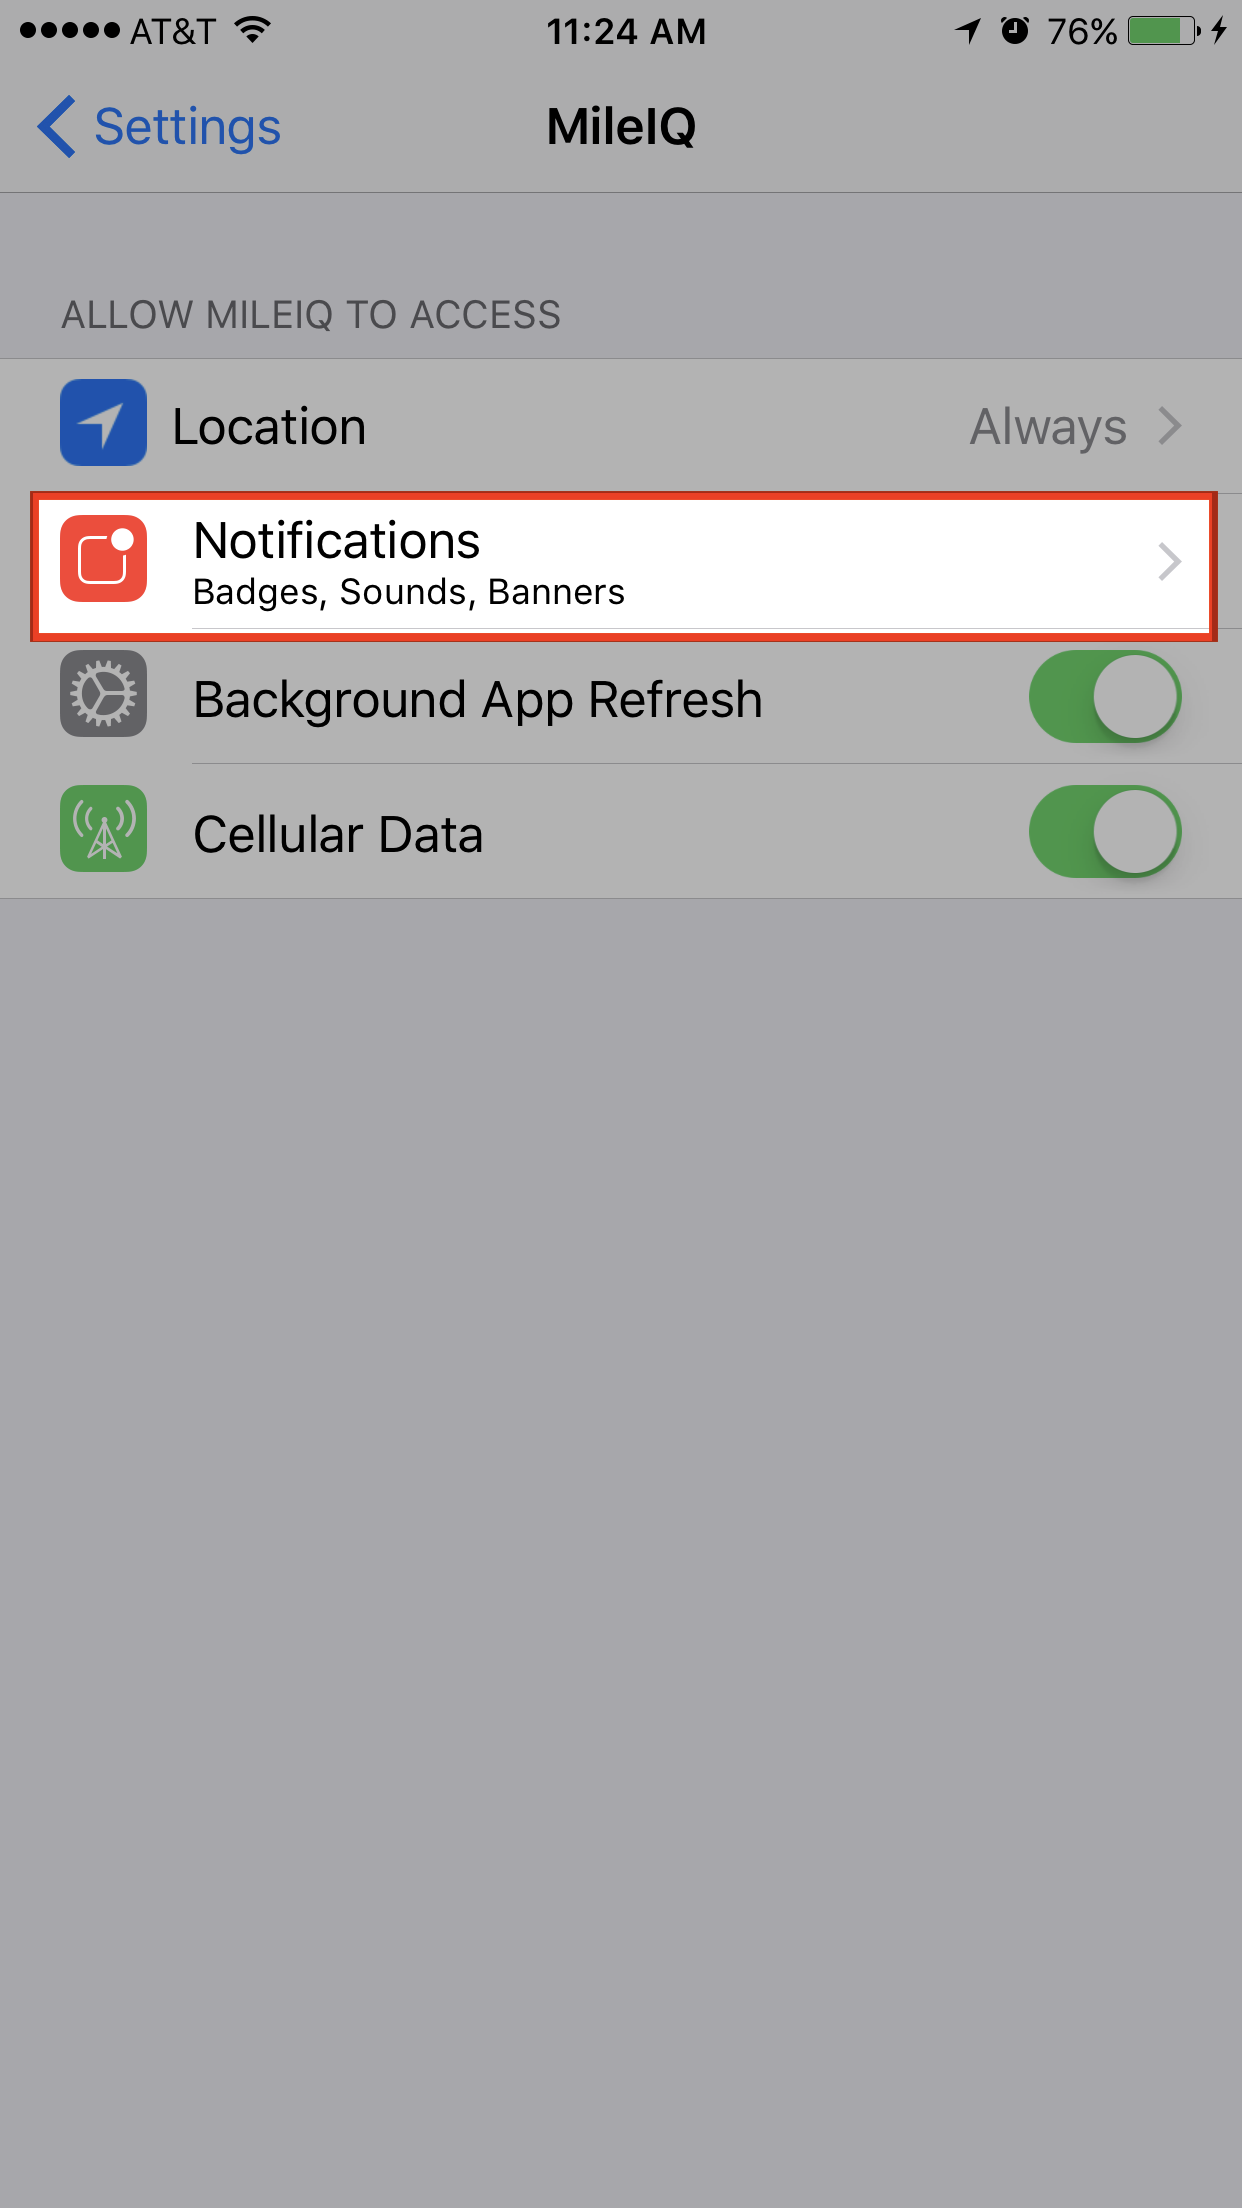 This image shows the Notifications page.